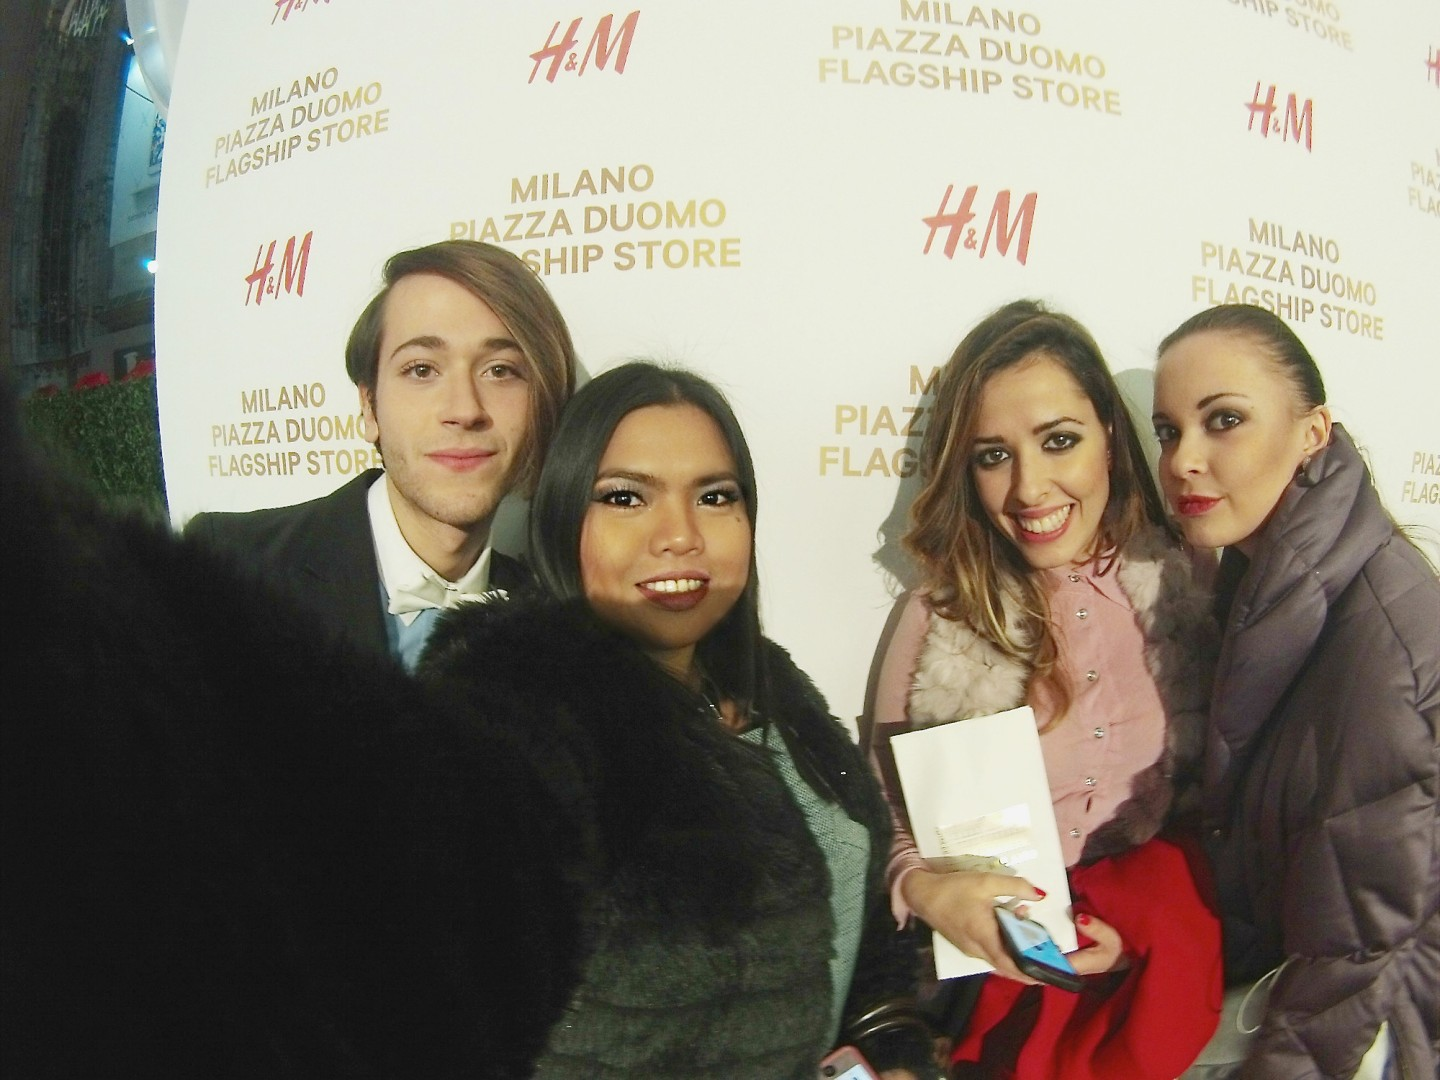 H&M Milano Piazza Duomo Flagship Store Public OpeningToday